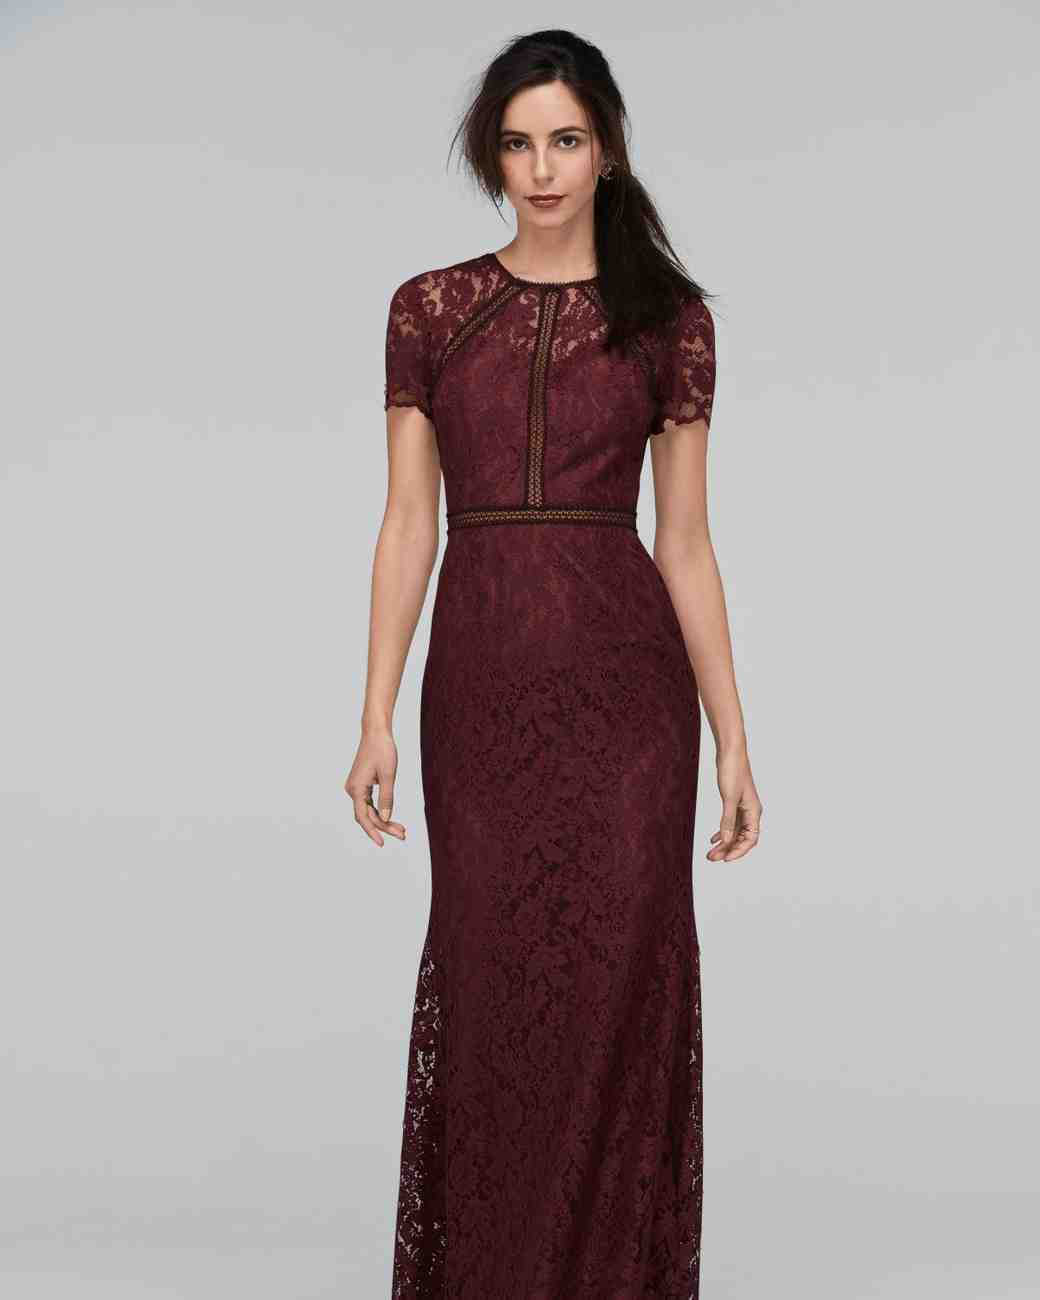 Lace Bridesmaids Dresses Watters Hudson Dress